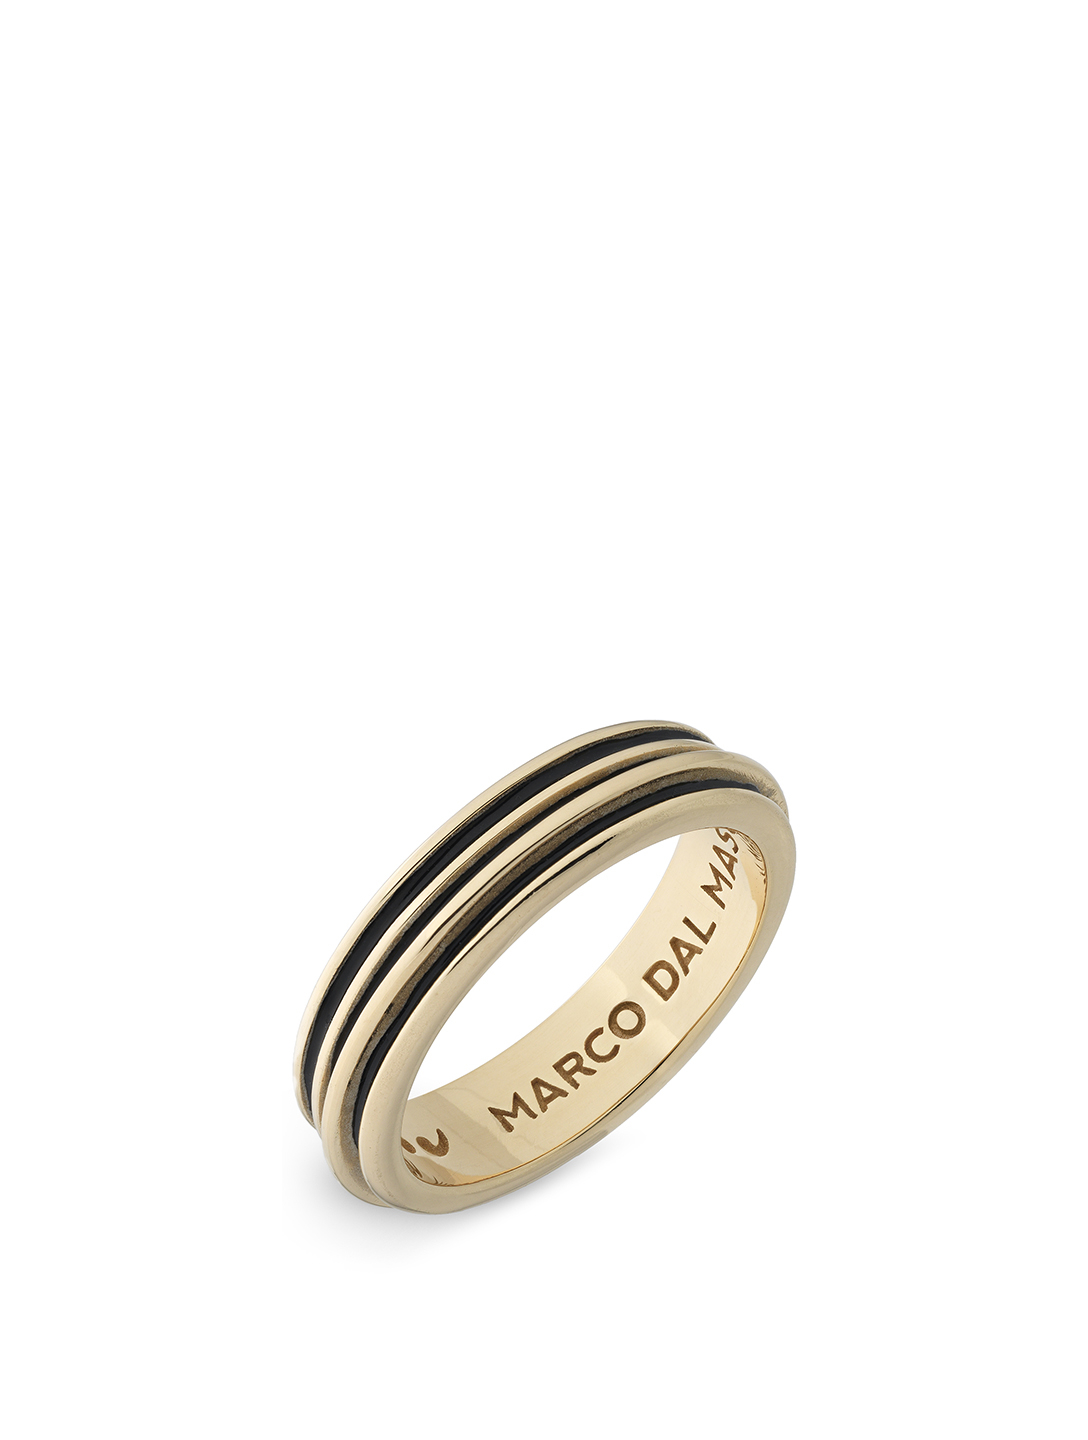 MARCO DAL MASO Acies Single 18K Yellow Gold Plated Ring Men's Metallic